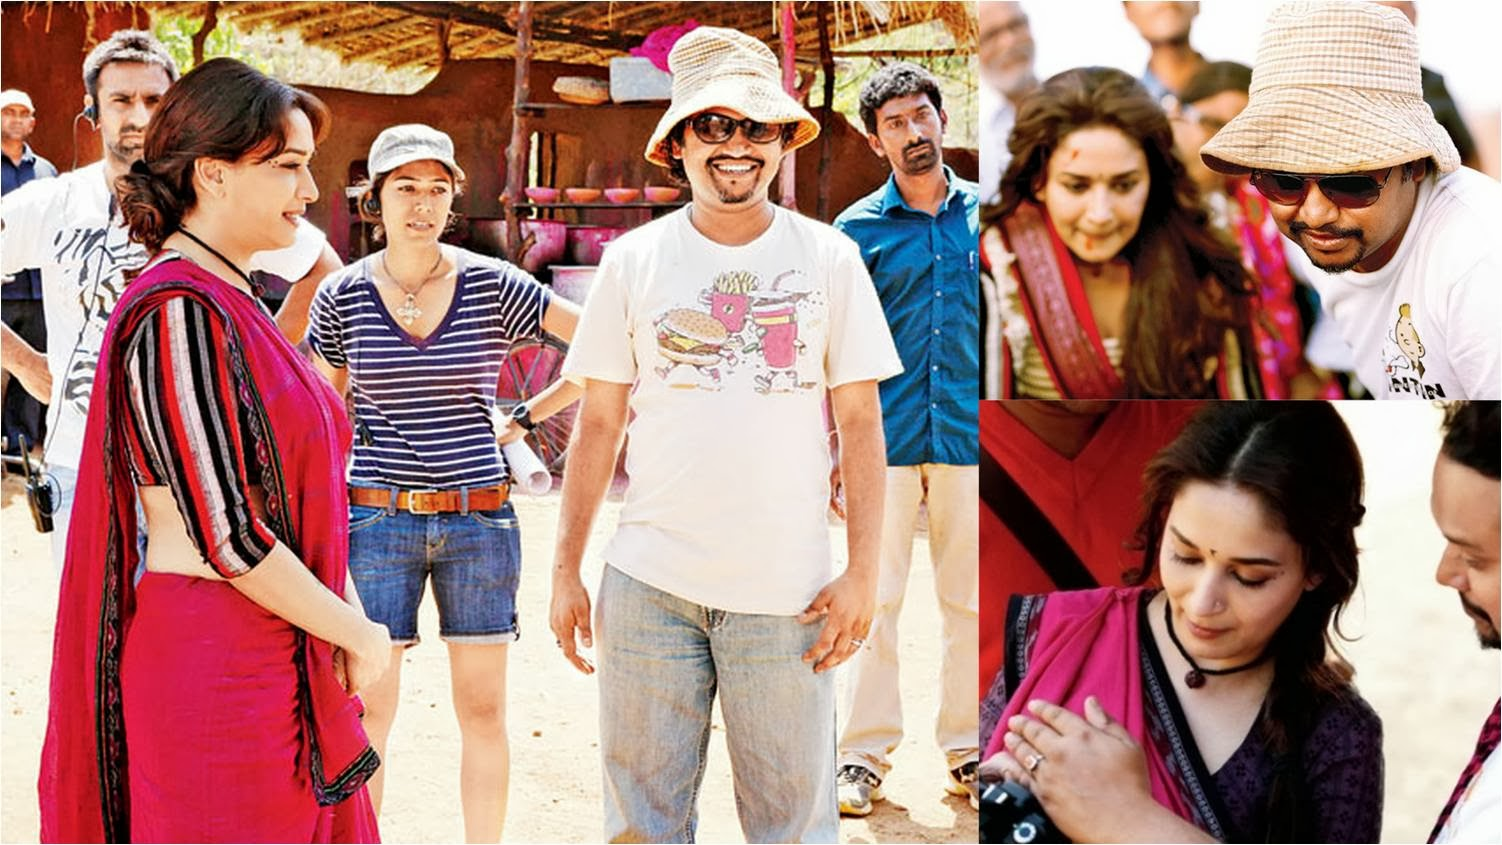 Madhuri Dixit checking back her filming video in camera at shooting location of Gulaab Gang movie